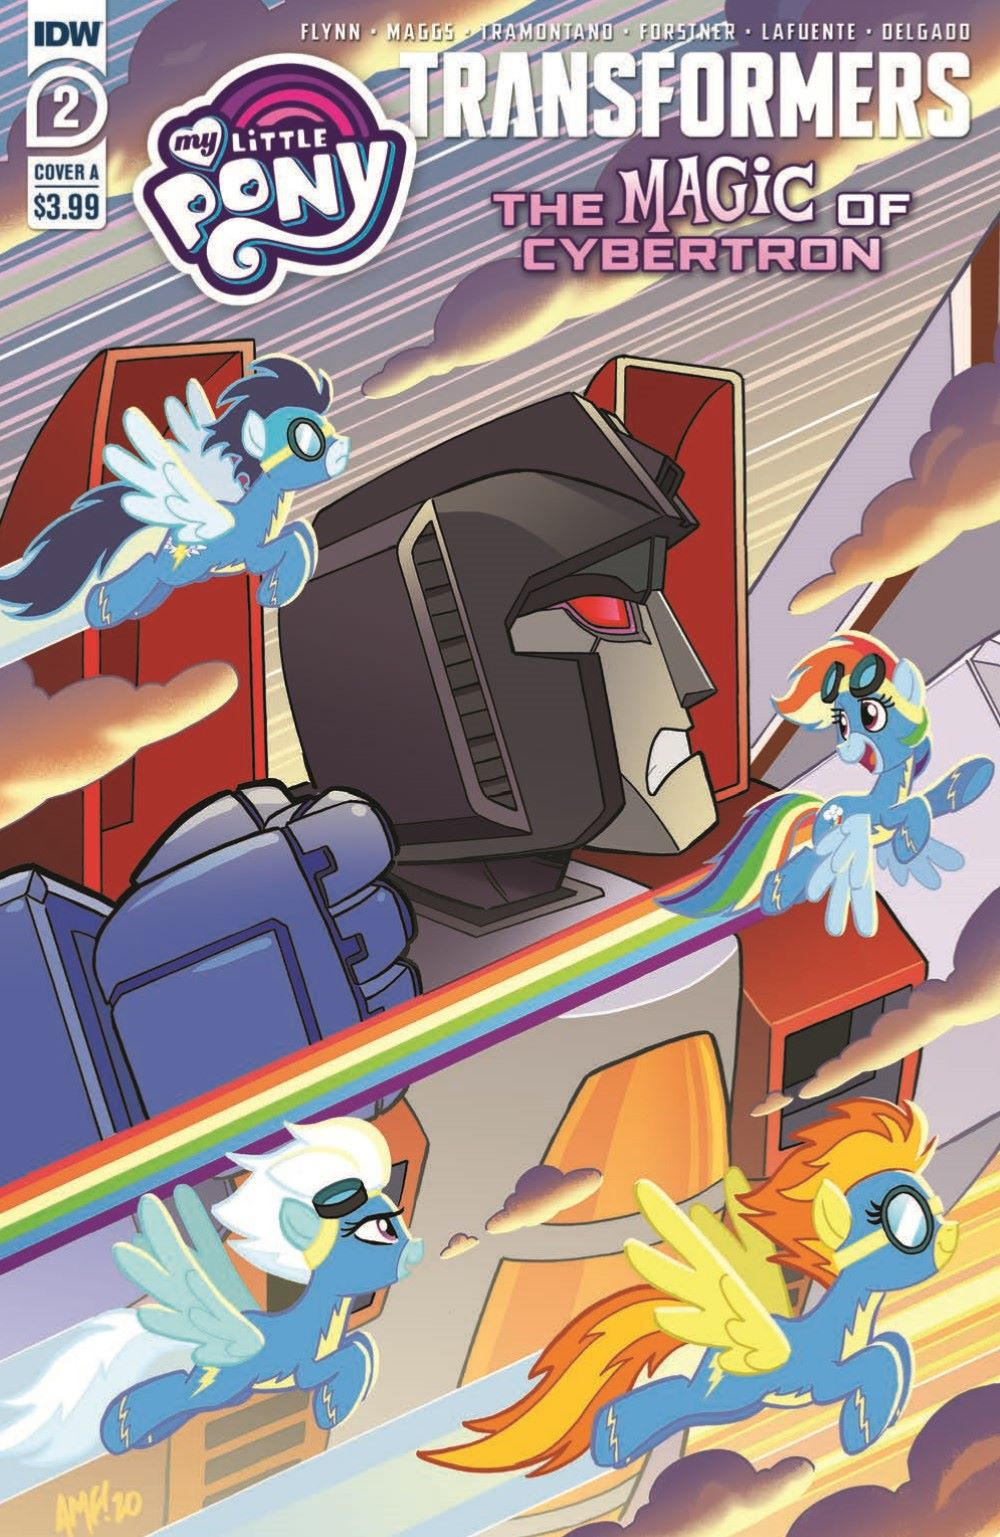 TFMLP2-02-pr-1 ComicList: IDW Publishing New Releases for 05/26/2021